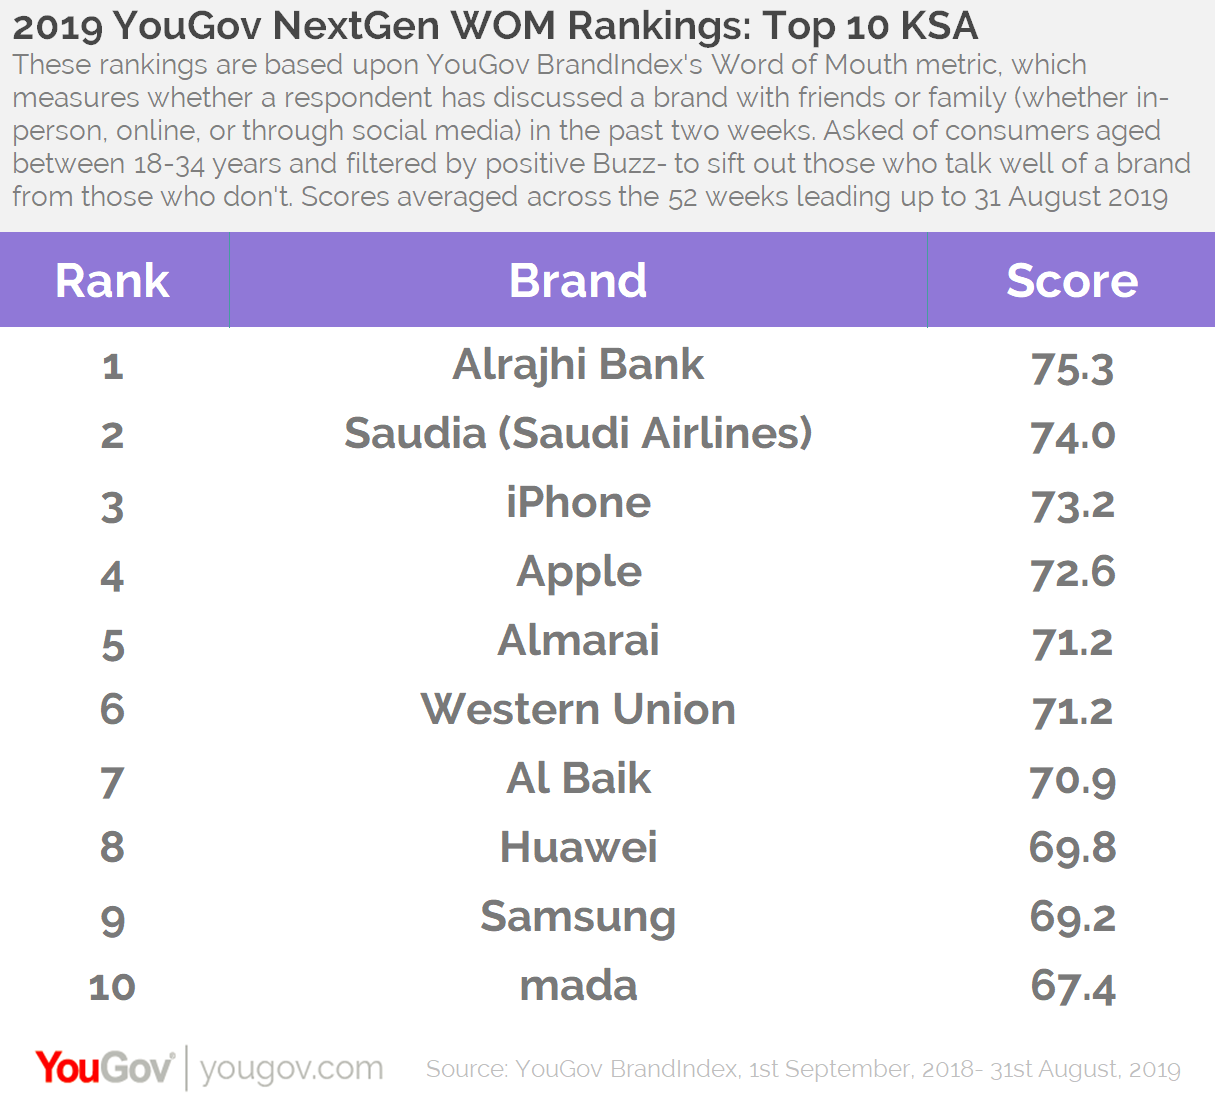 2019 WOM Rankings- Top 10 KSA